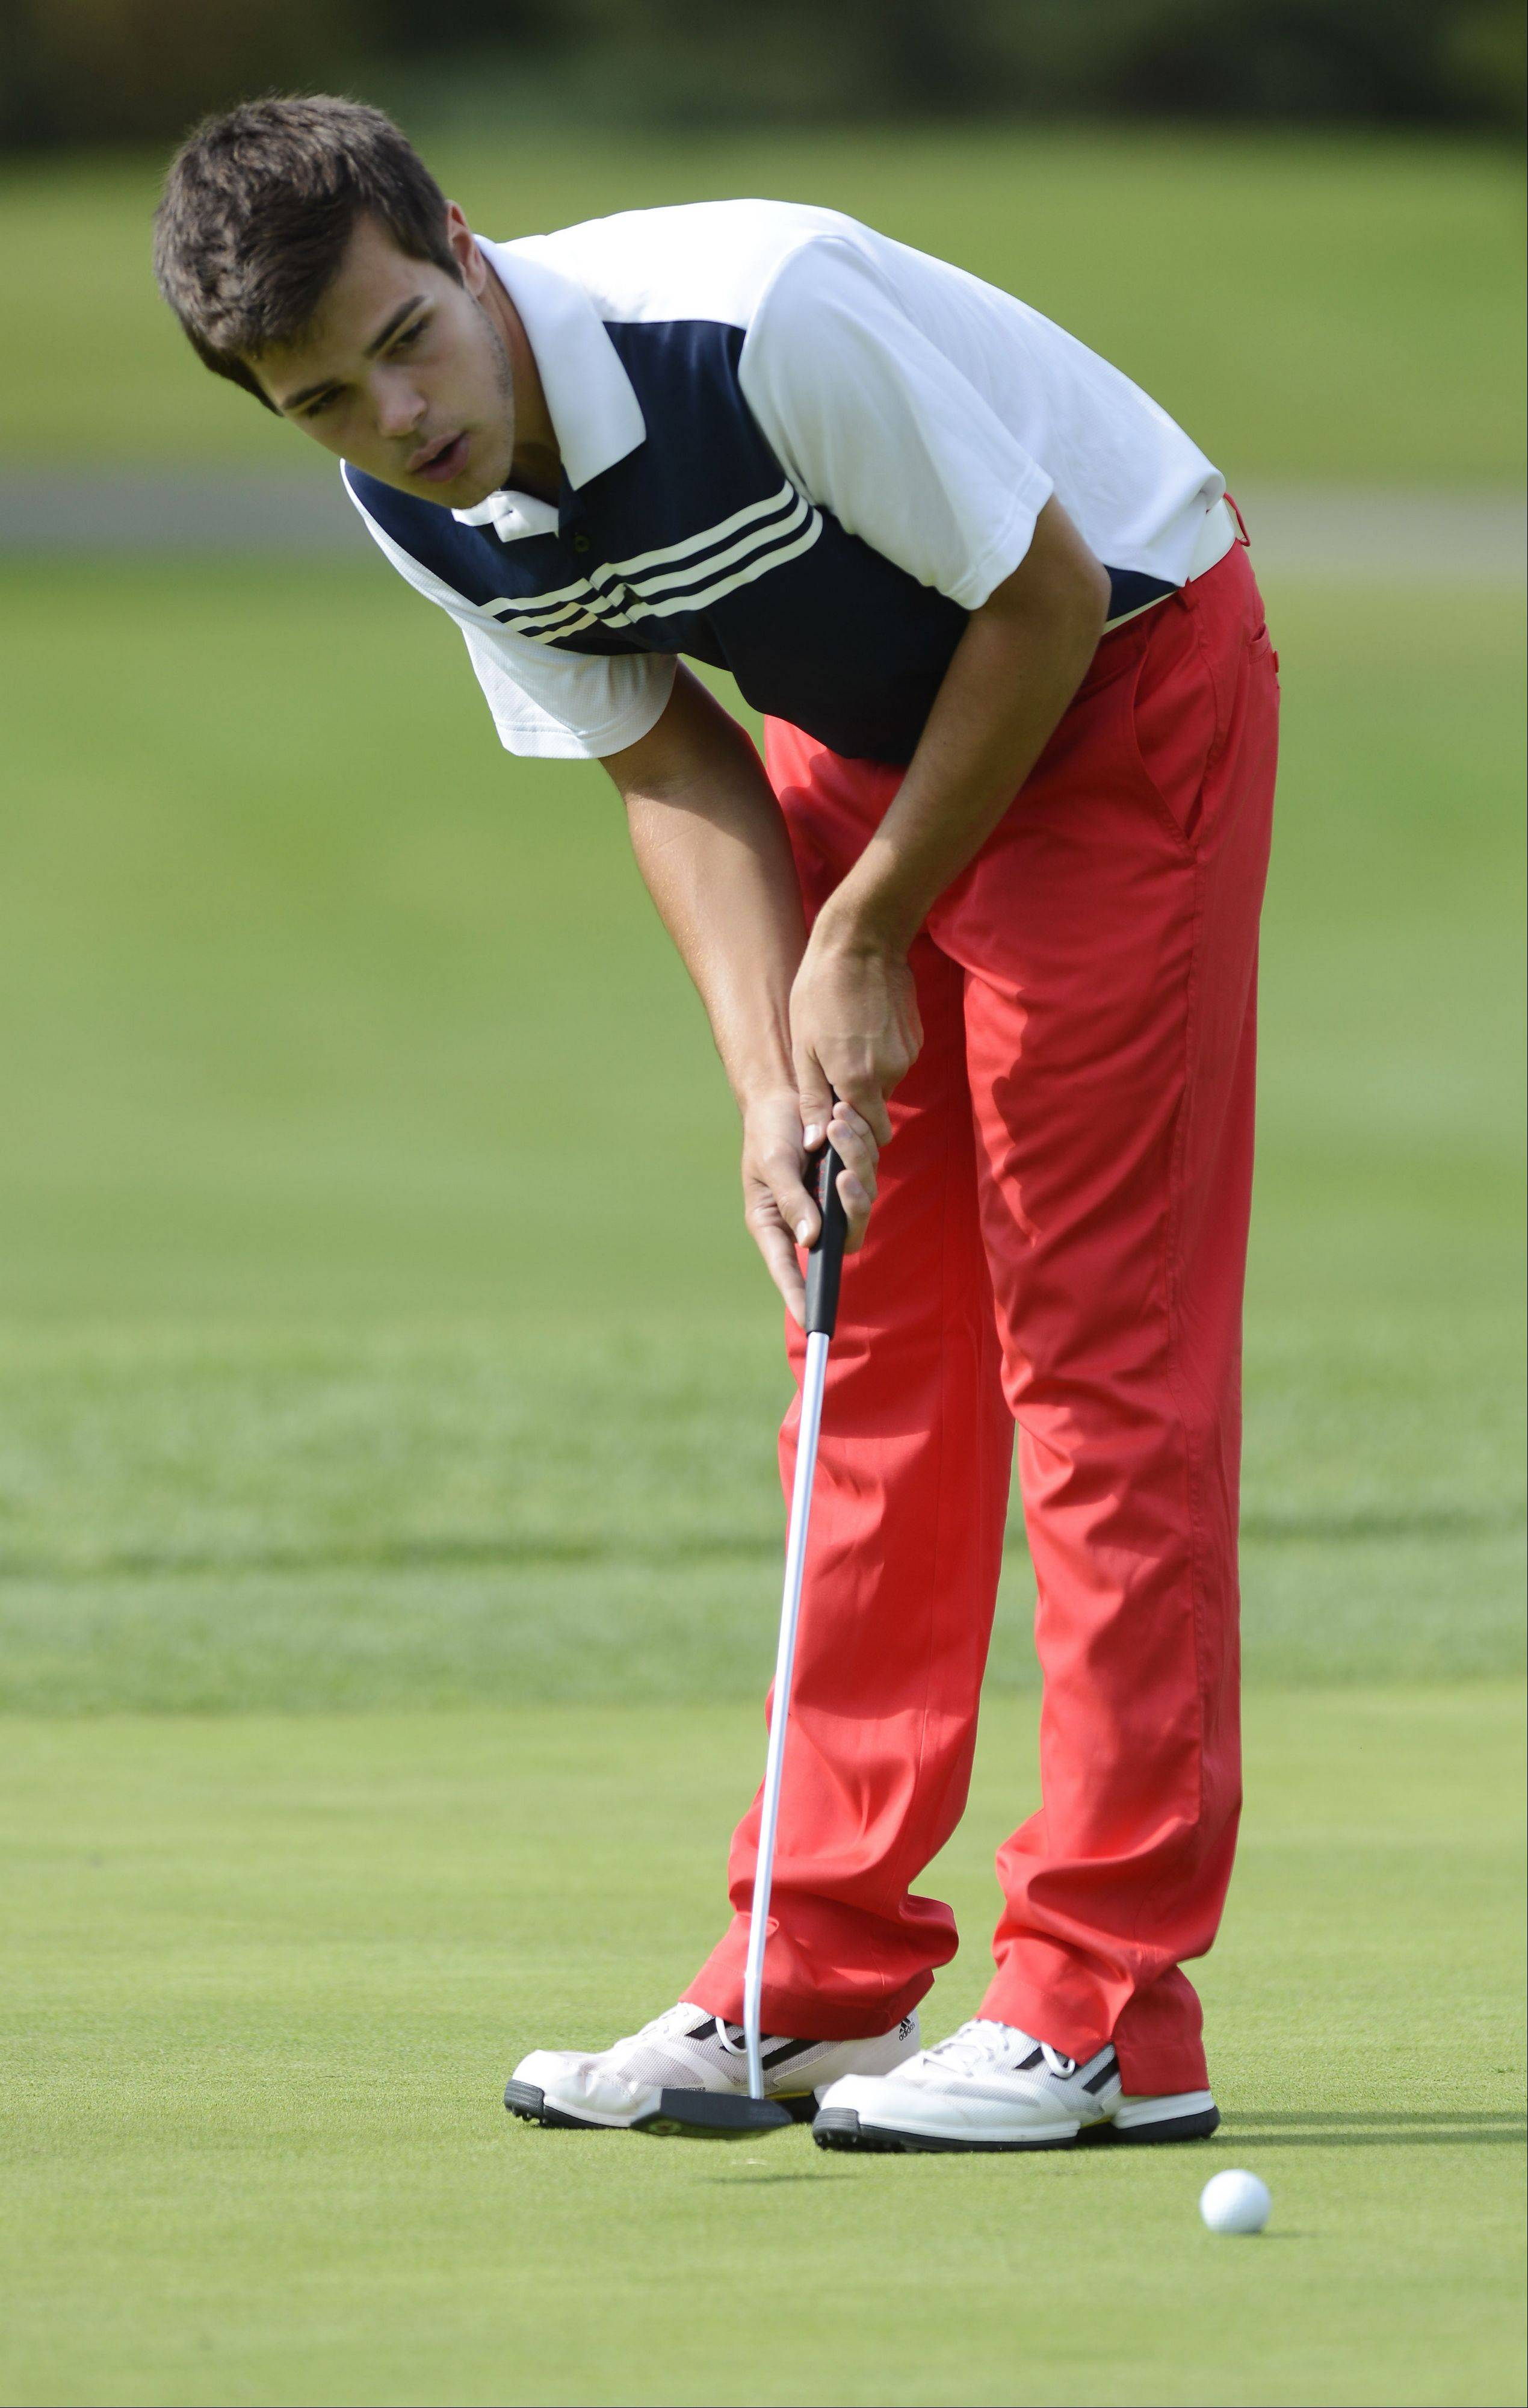 Conant's Michael Mayer putts during Wednesday's match with Palatine and Prospect at Palatine Hills Golf Course.